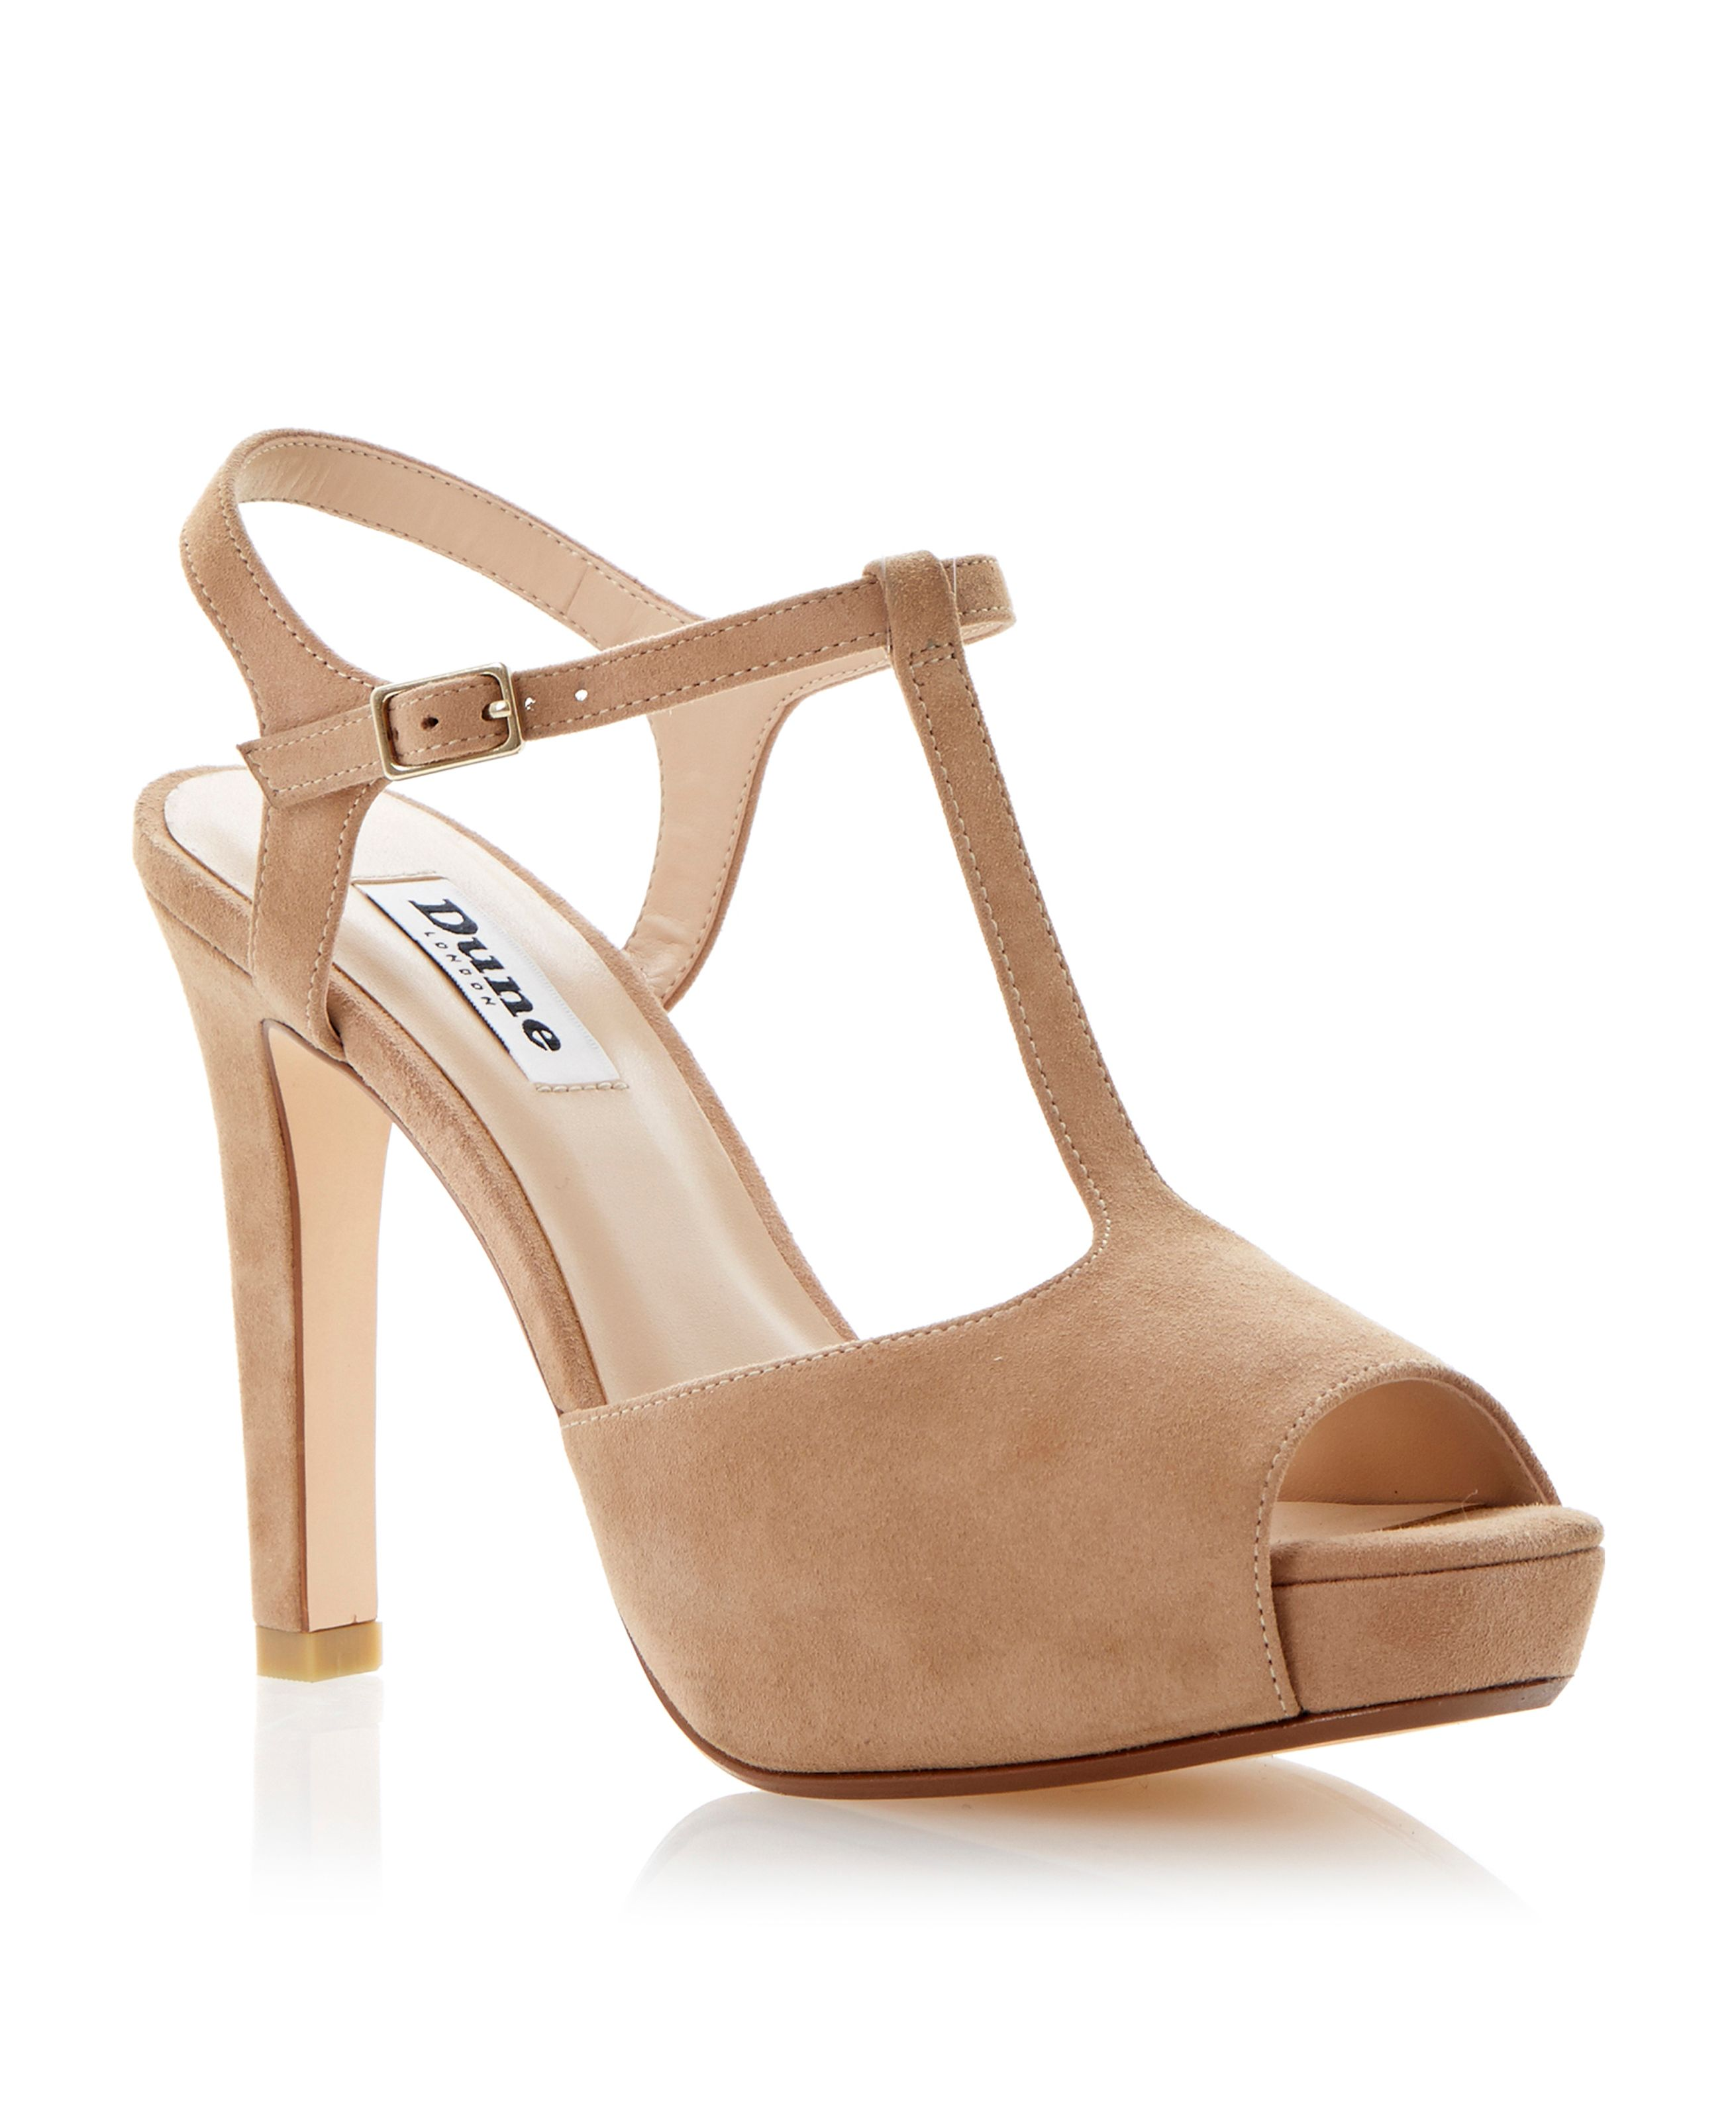 Harlane suede stiletto sandals